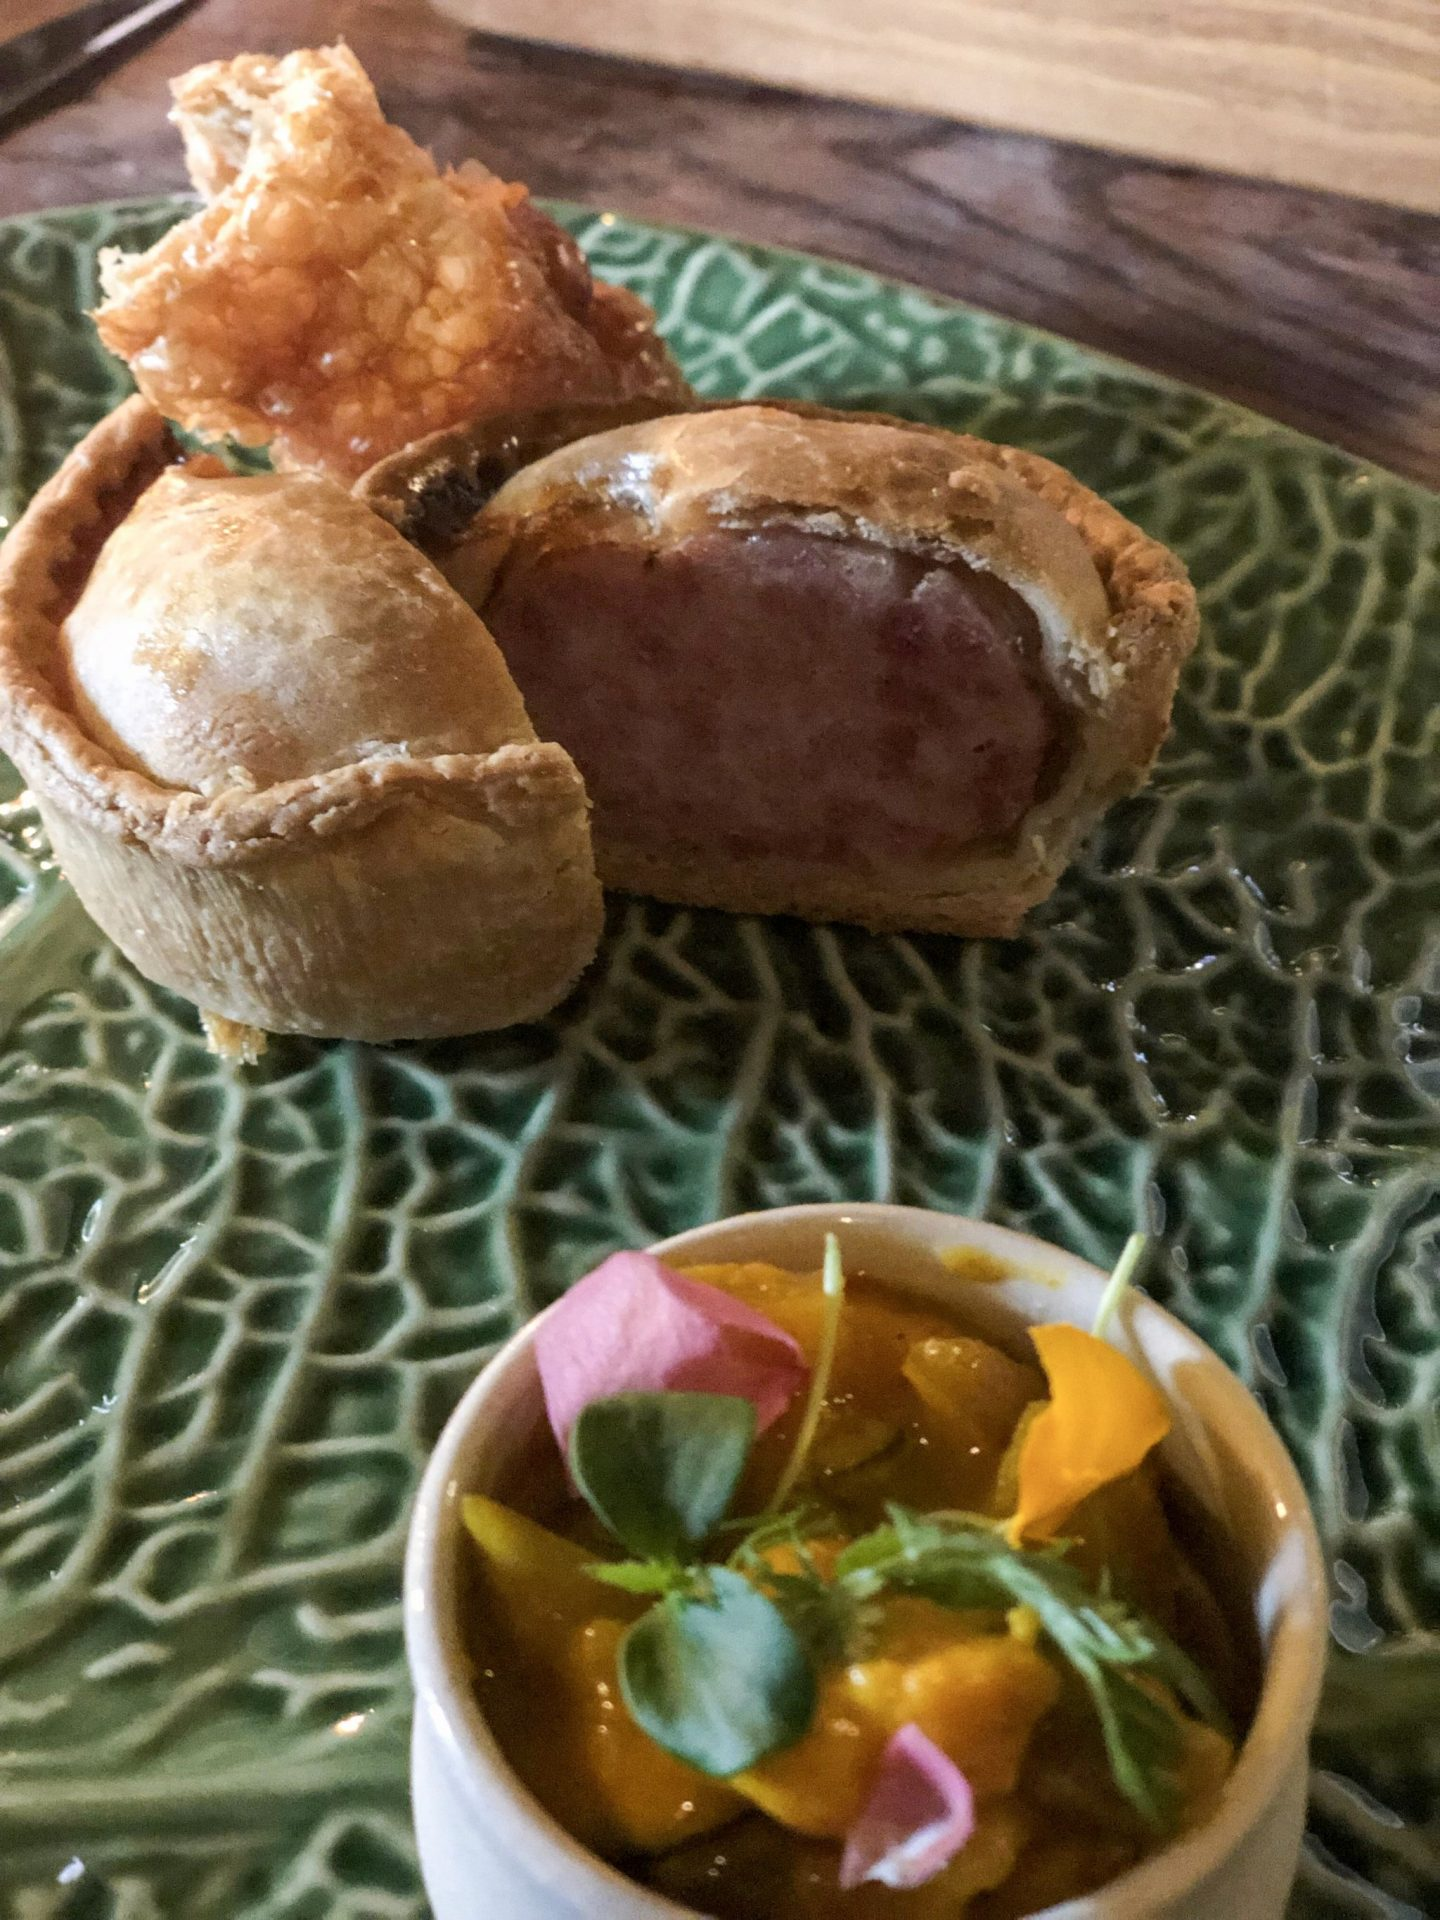 A pork pie cut in half on a green plate, with a vibrant piccalilli in front. Eaten at the Star Inn in Harome, nearby Helmsley